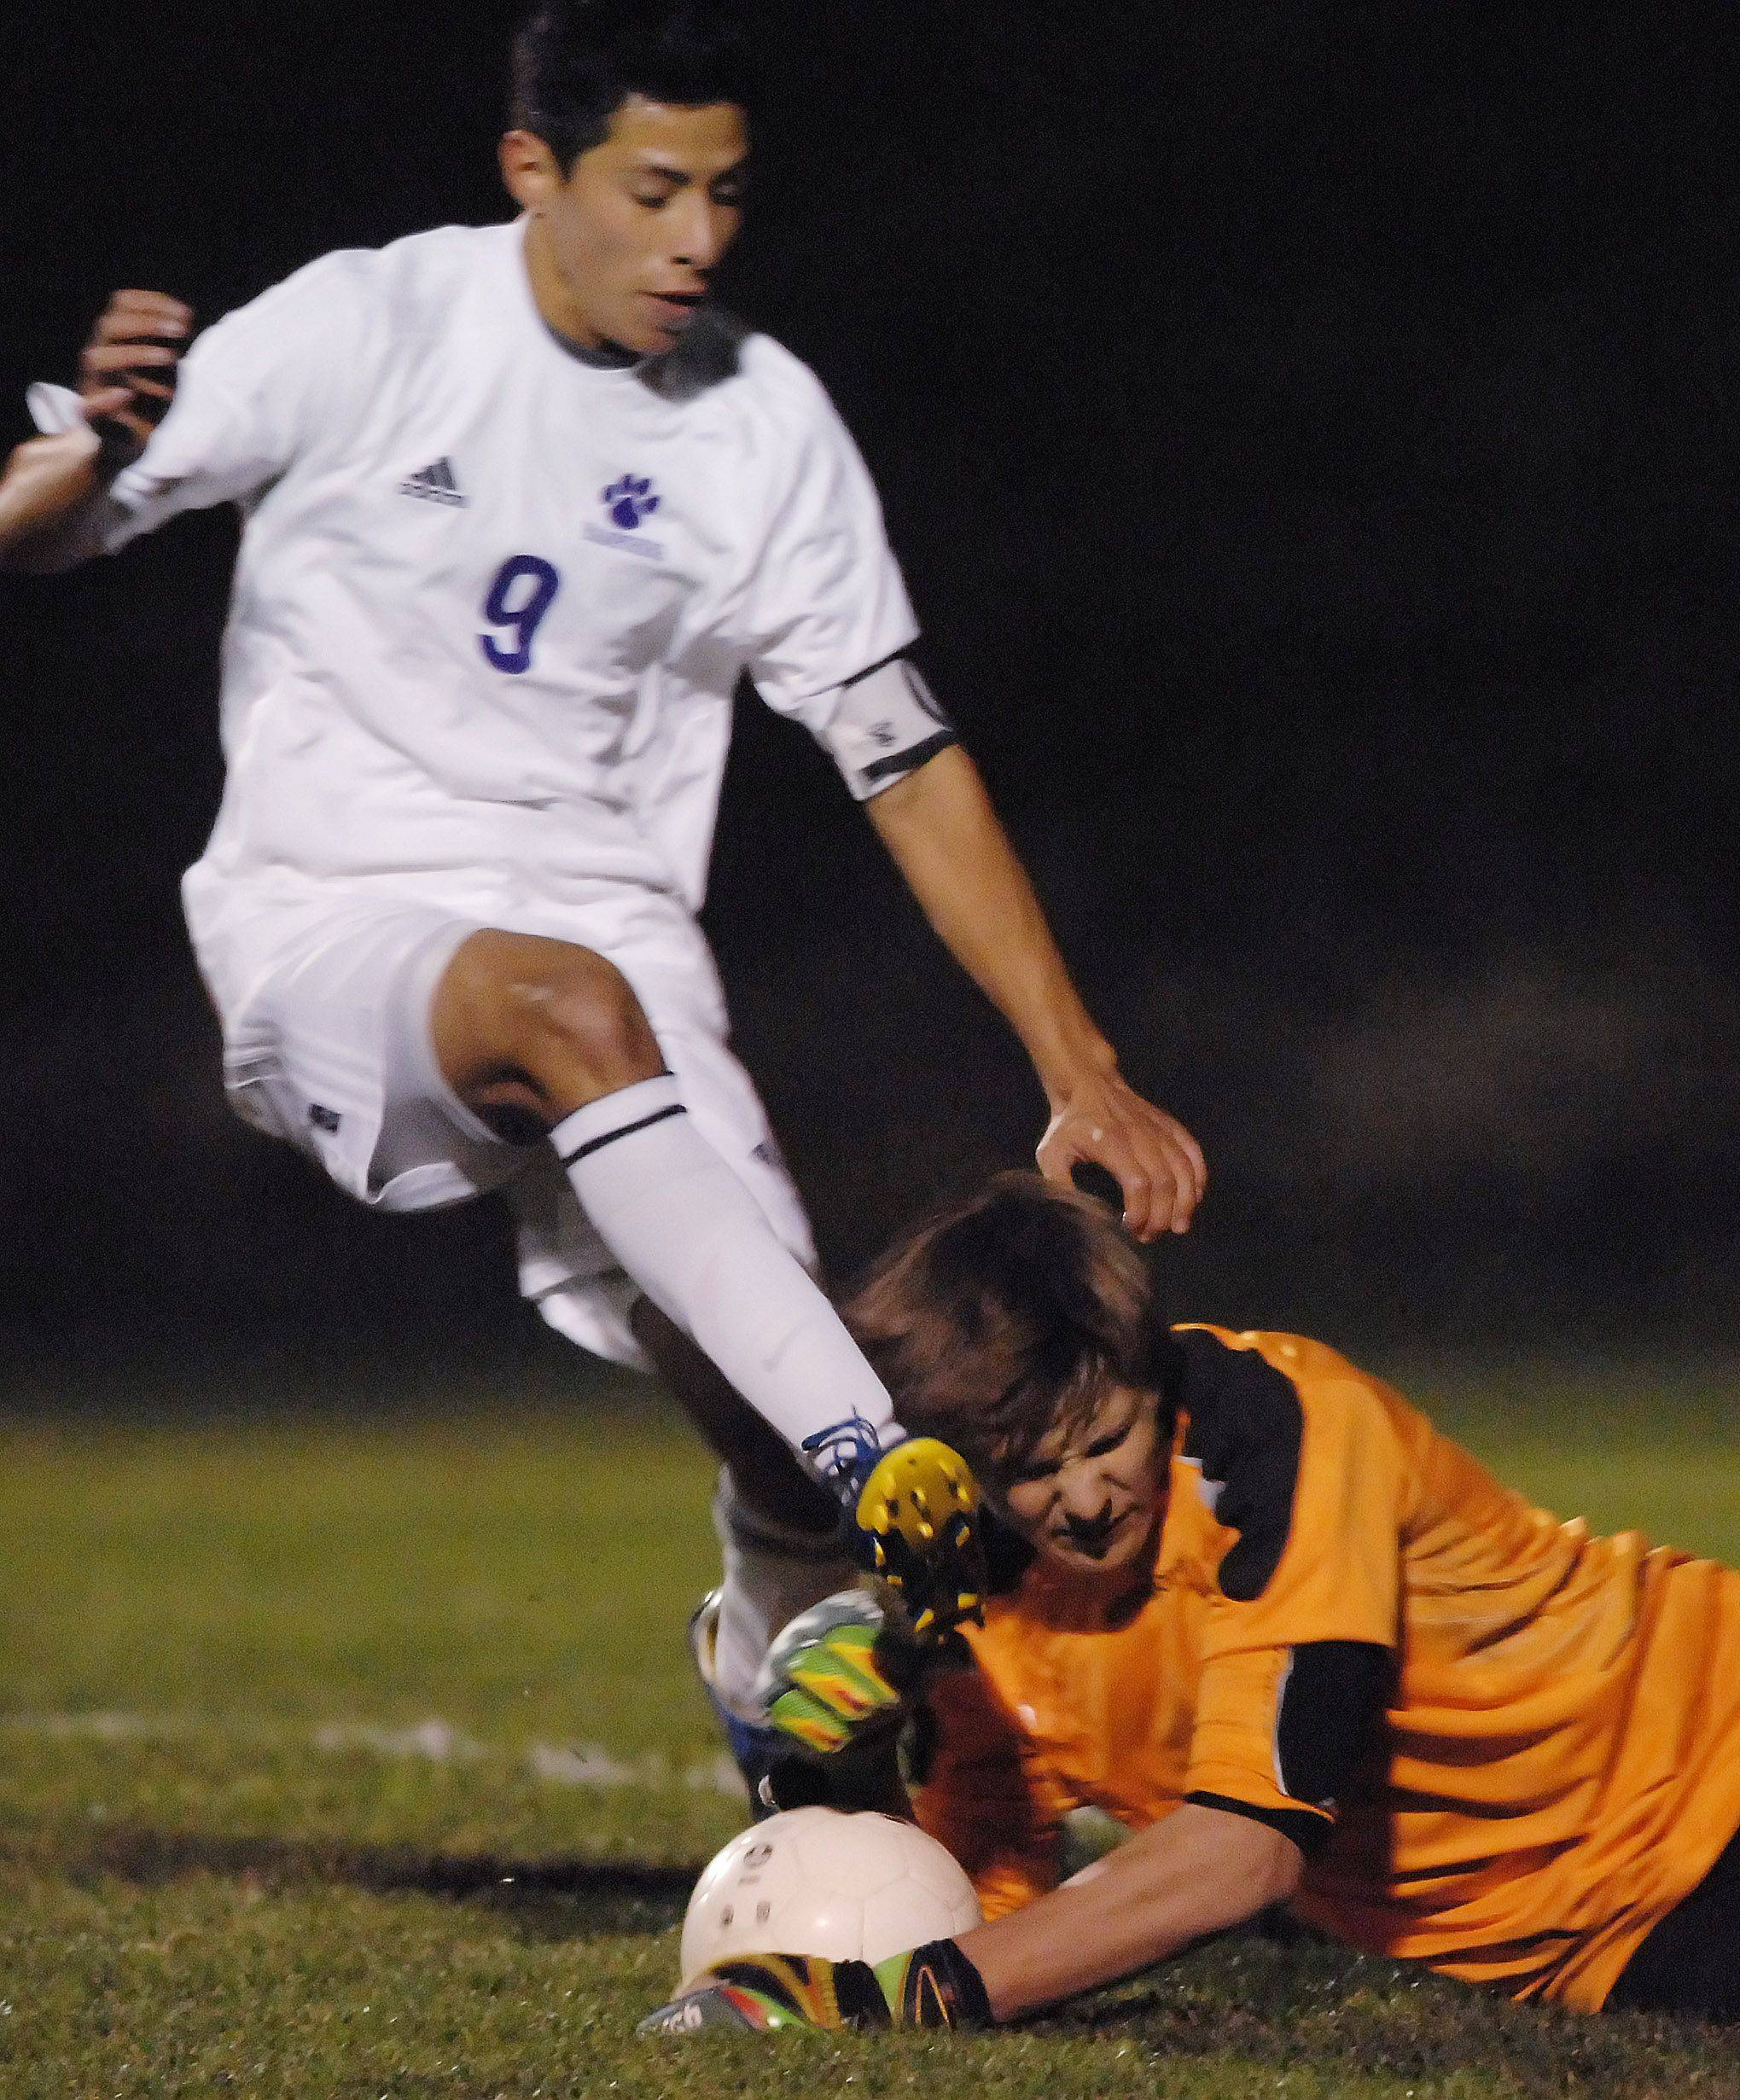 Prairie Ridge goalie Brandon Barnes gets kicked in the head by Hampshire's Ismael Morales as they both go for the ball in the box in the Hampshire regional game Tuesday.